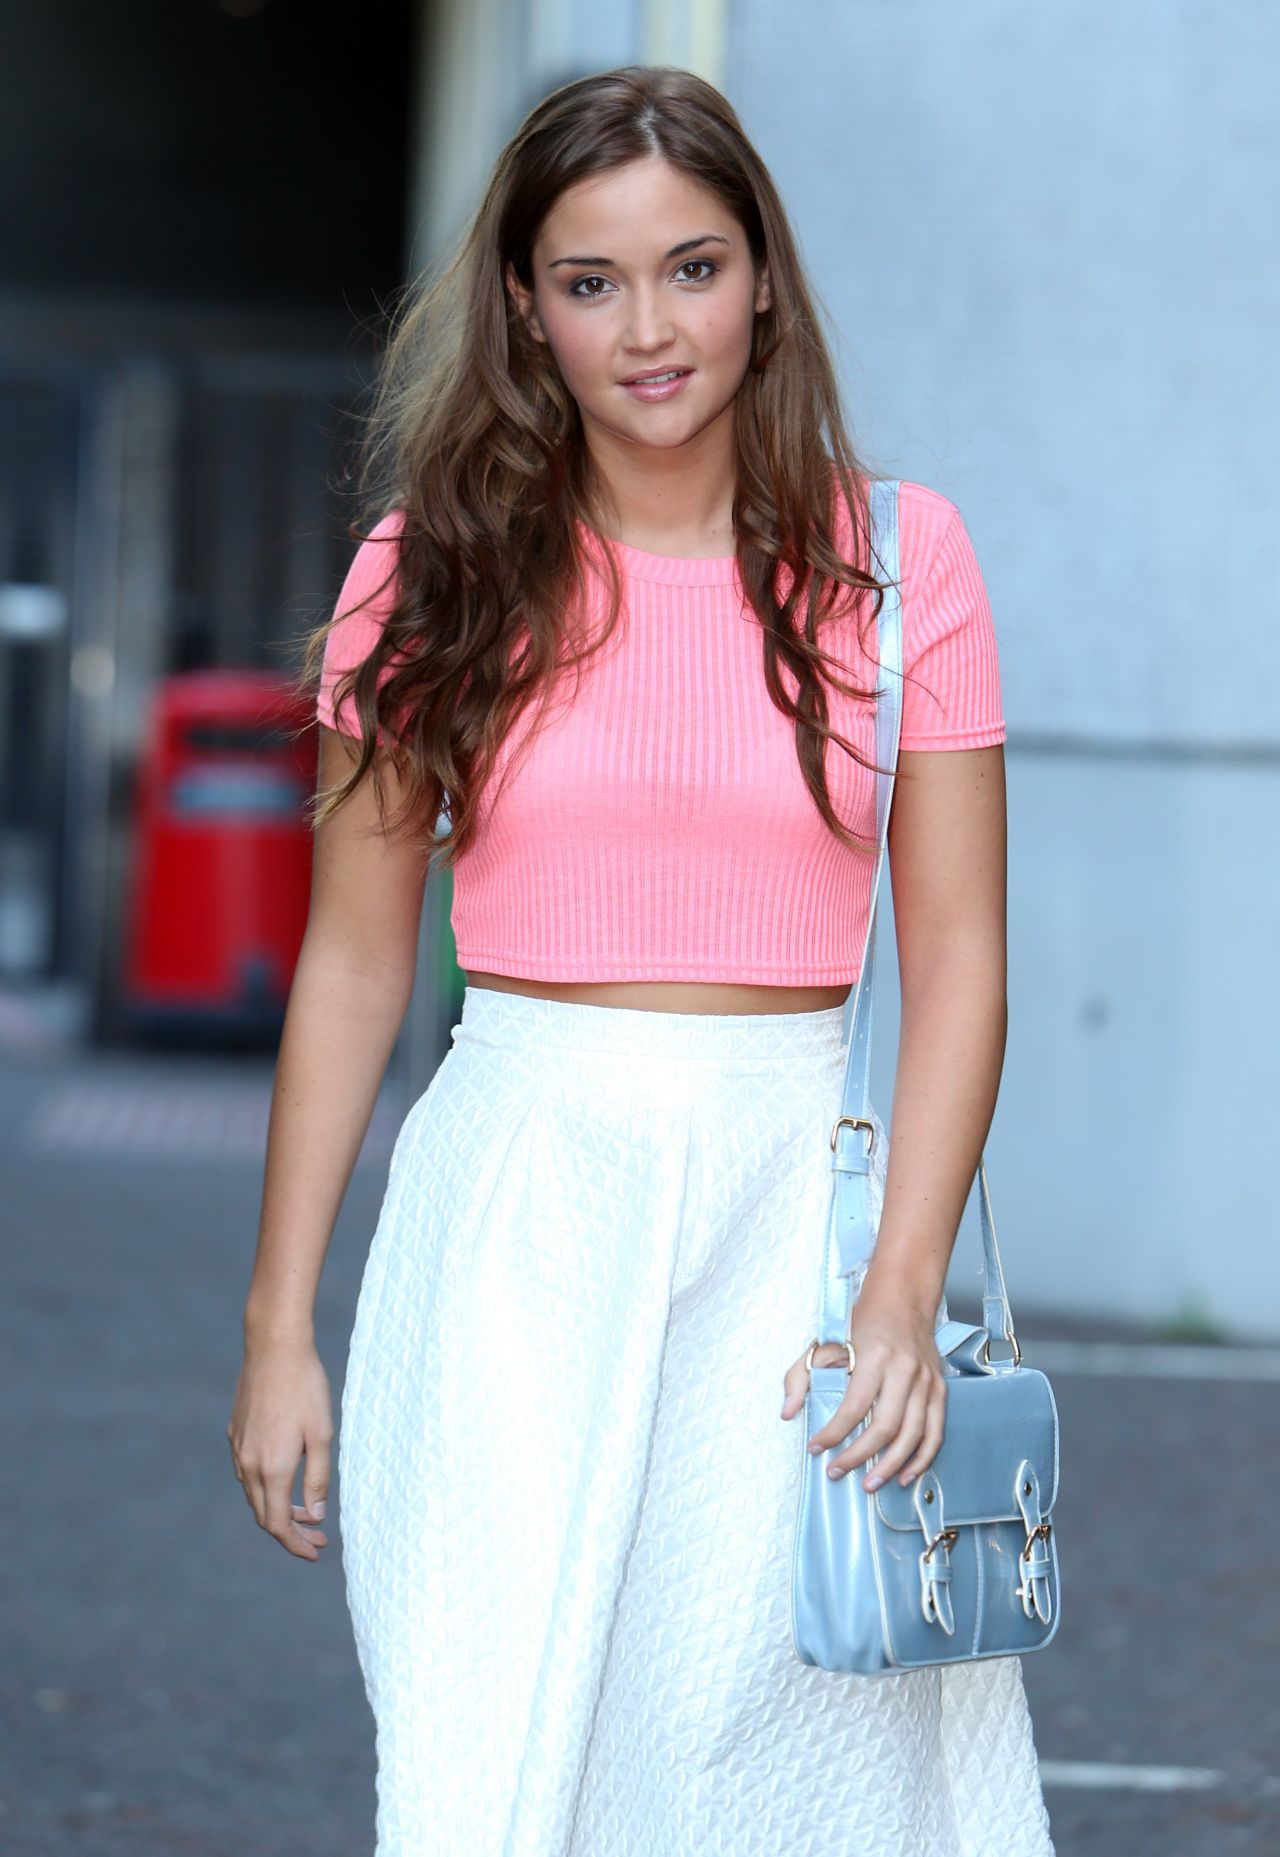 Jacqueline Jossa Itv Studios In London May 2014